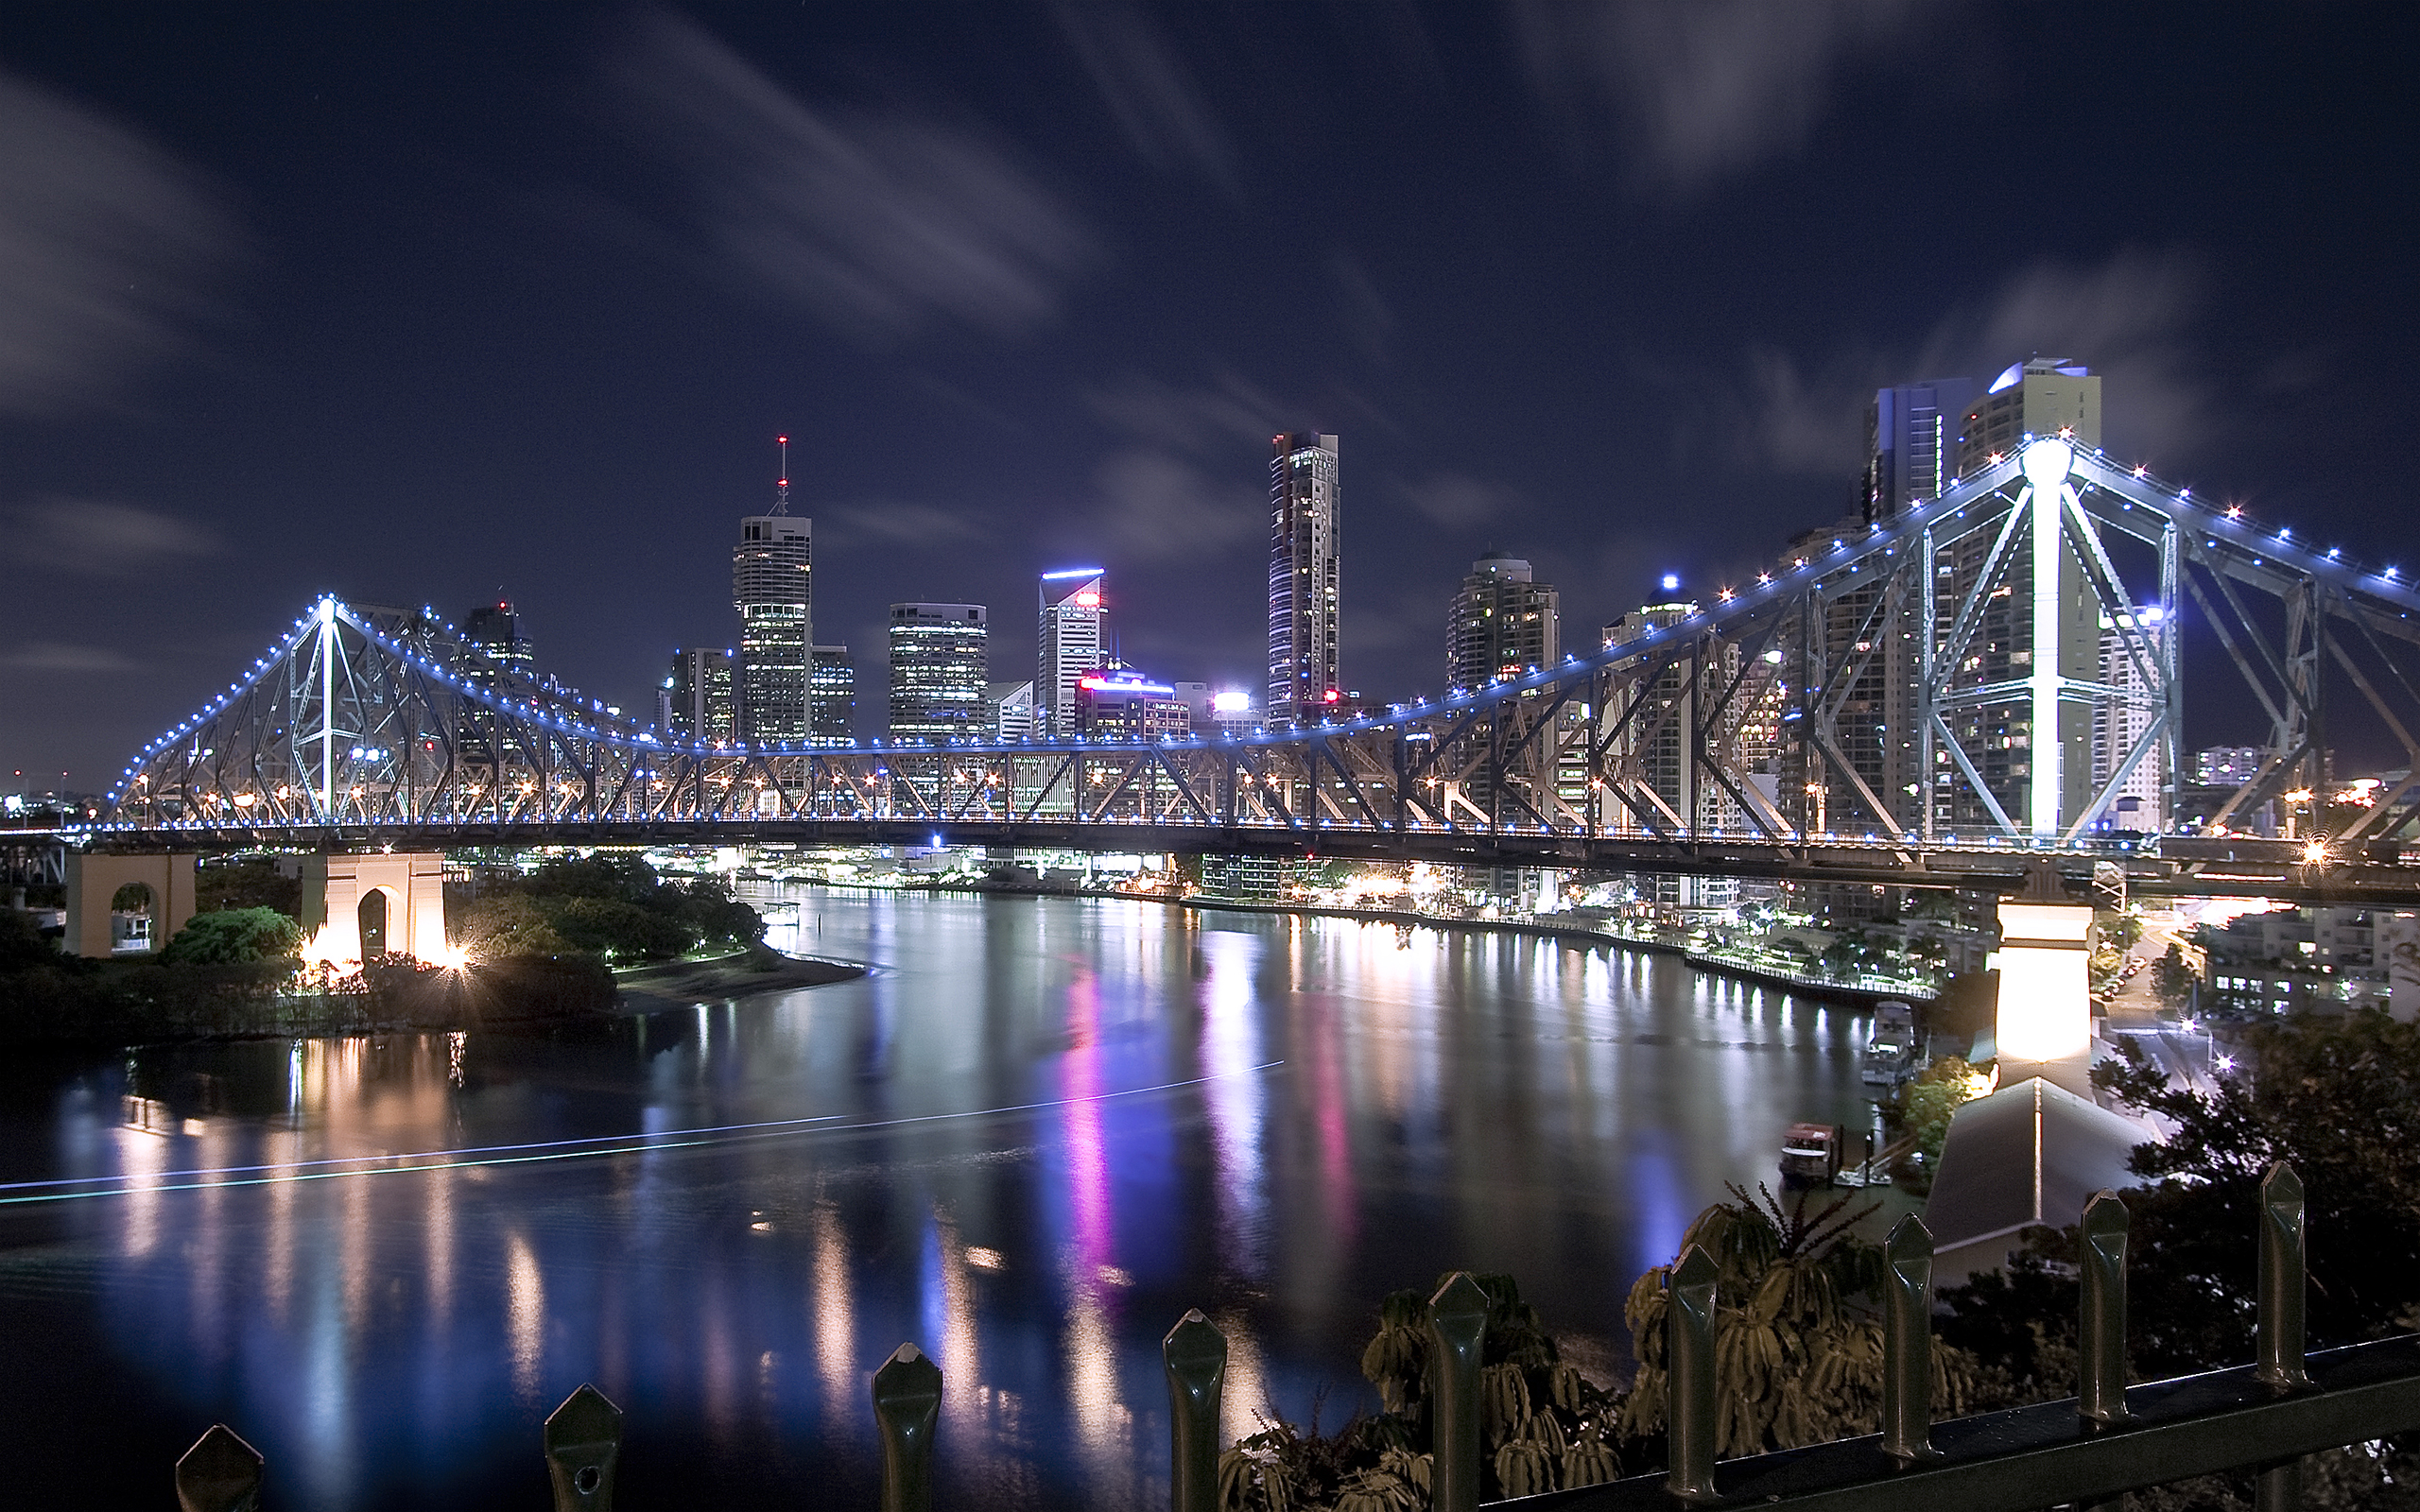 australia brisbane queensland - photo #16